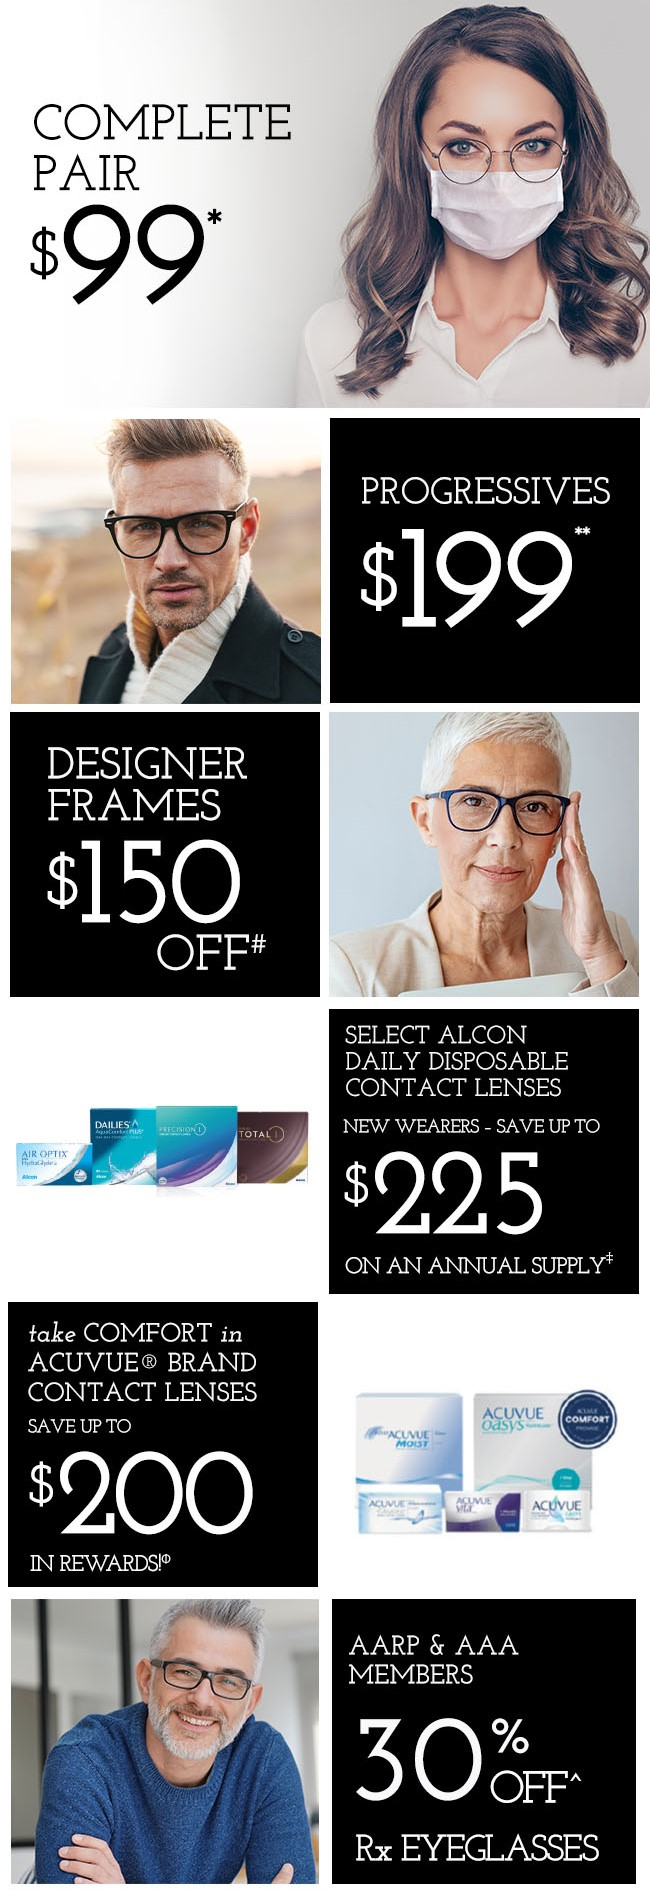 Sterling Optical Newburgh March 2021 List of Offers